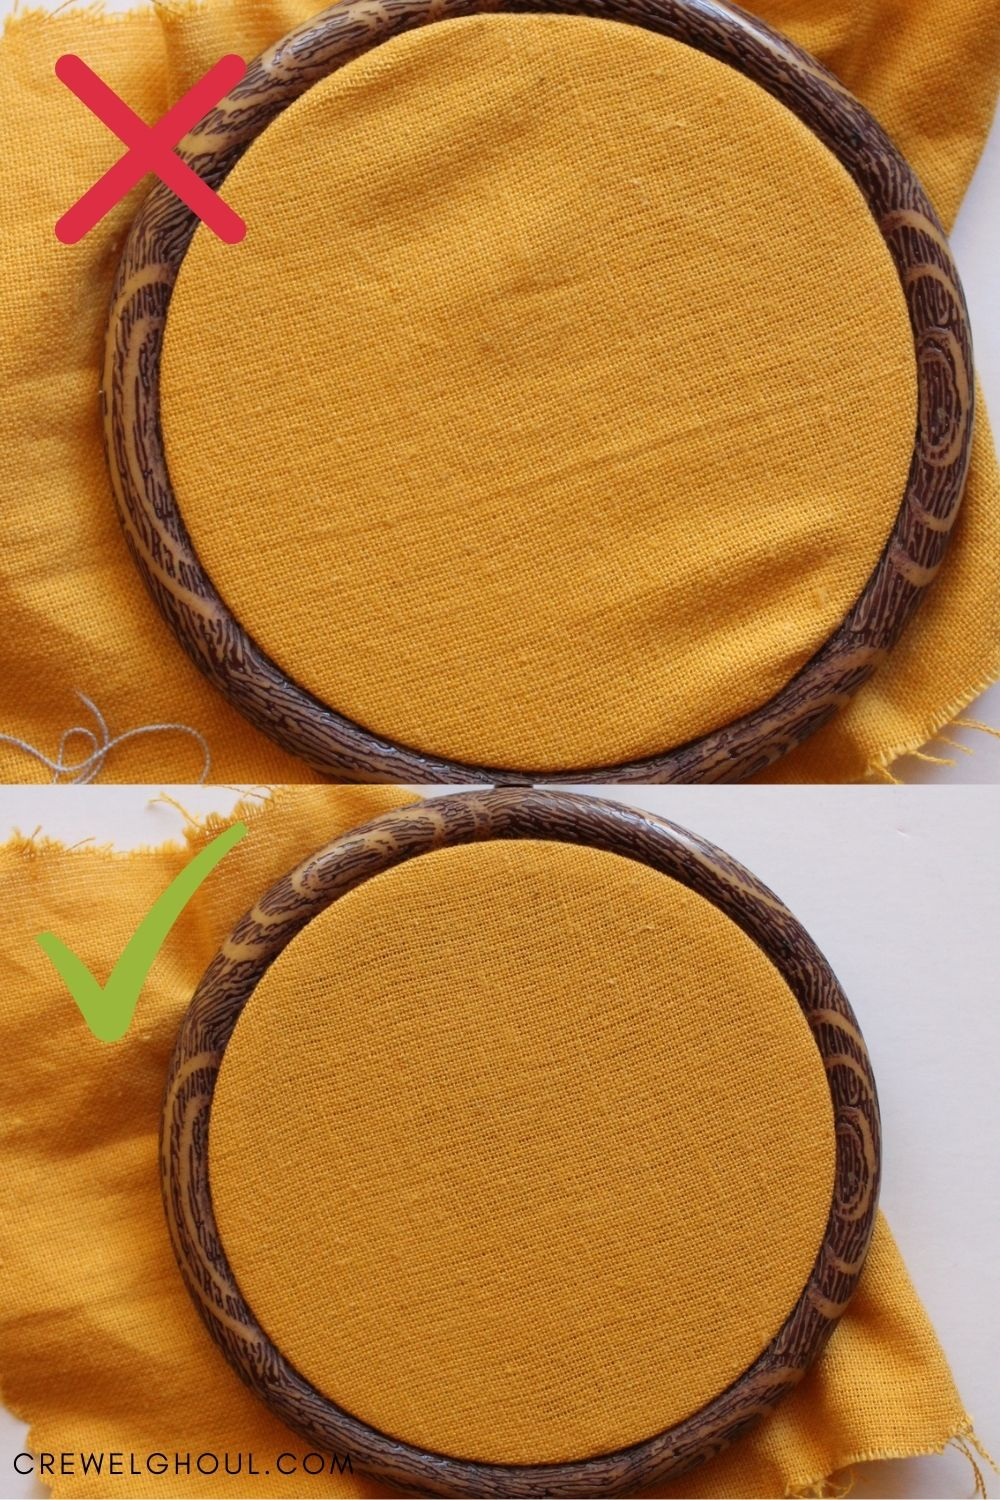 fabric loose in embroidery hoop vs fabric tight in embroidery hoop